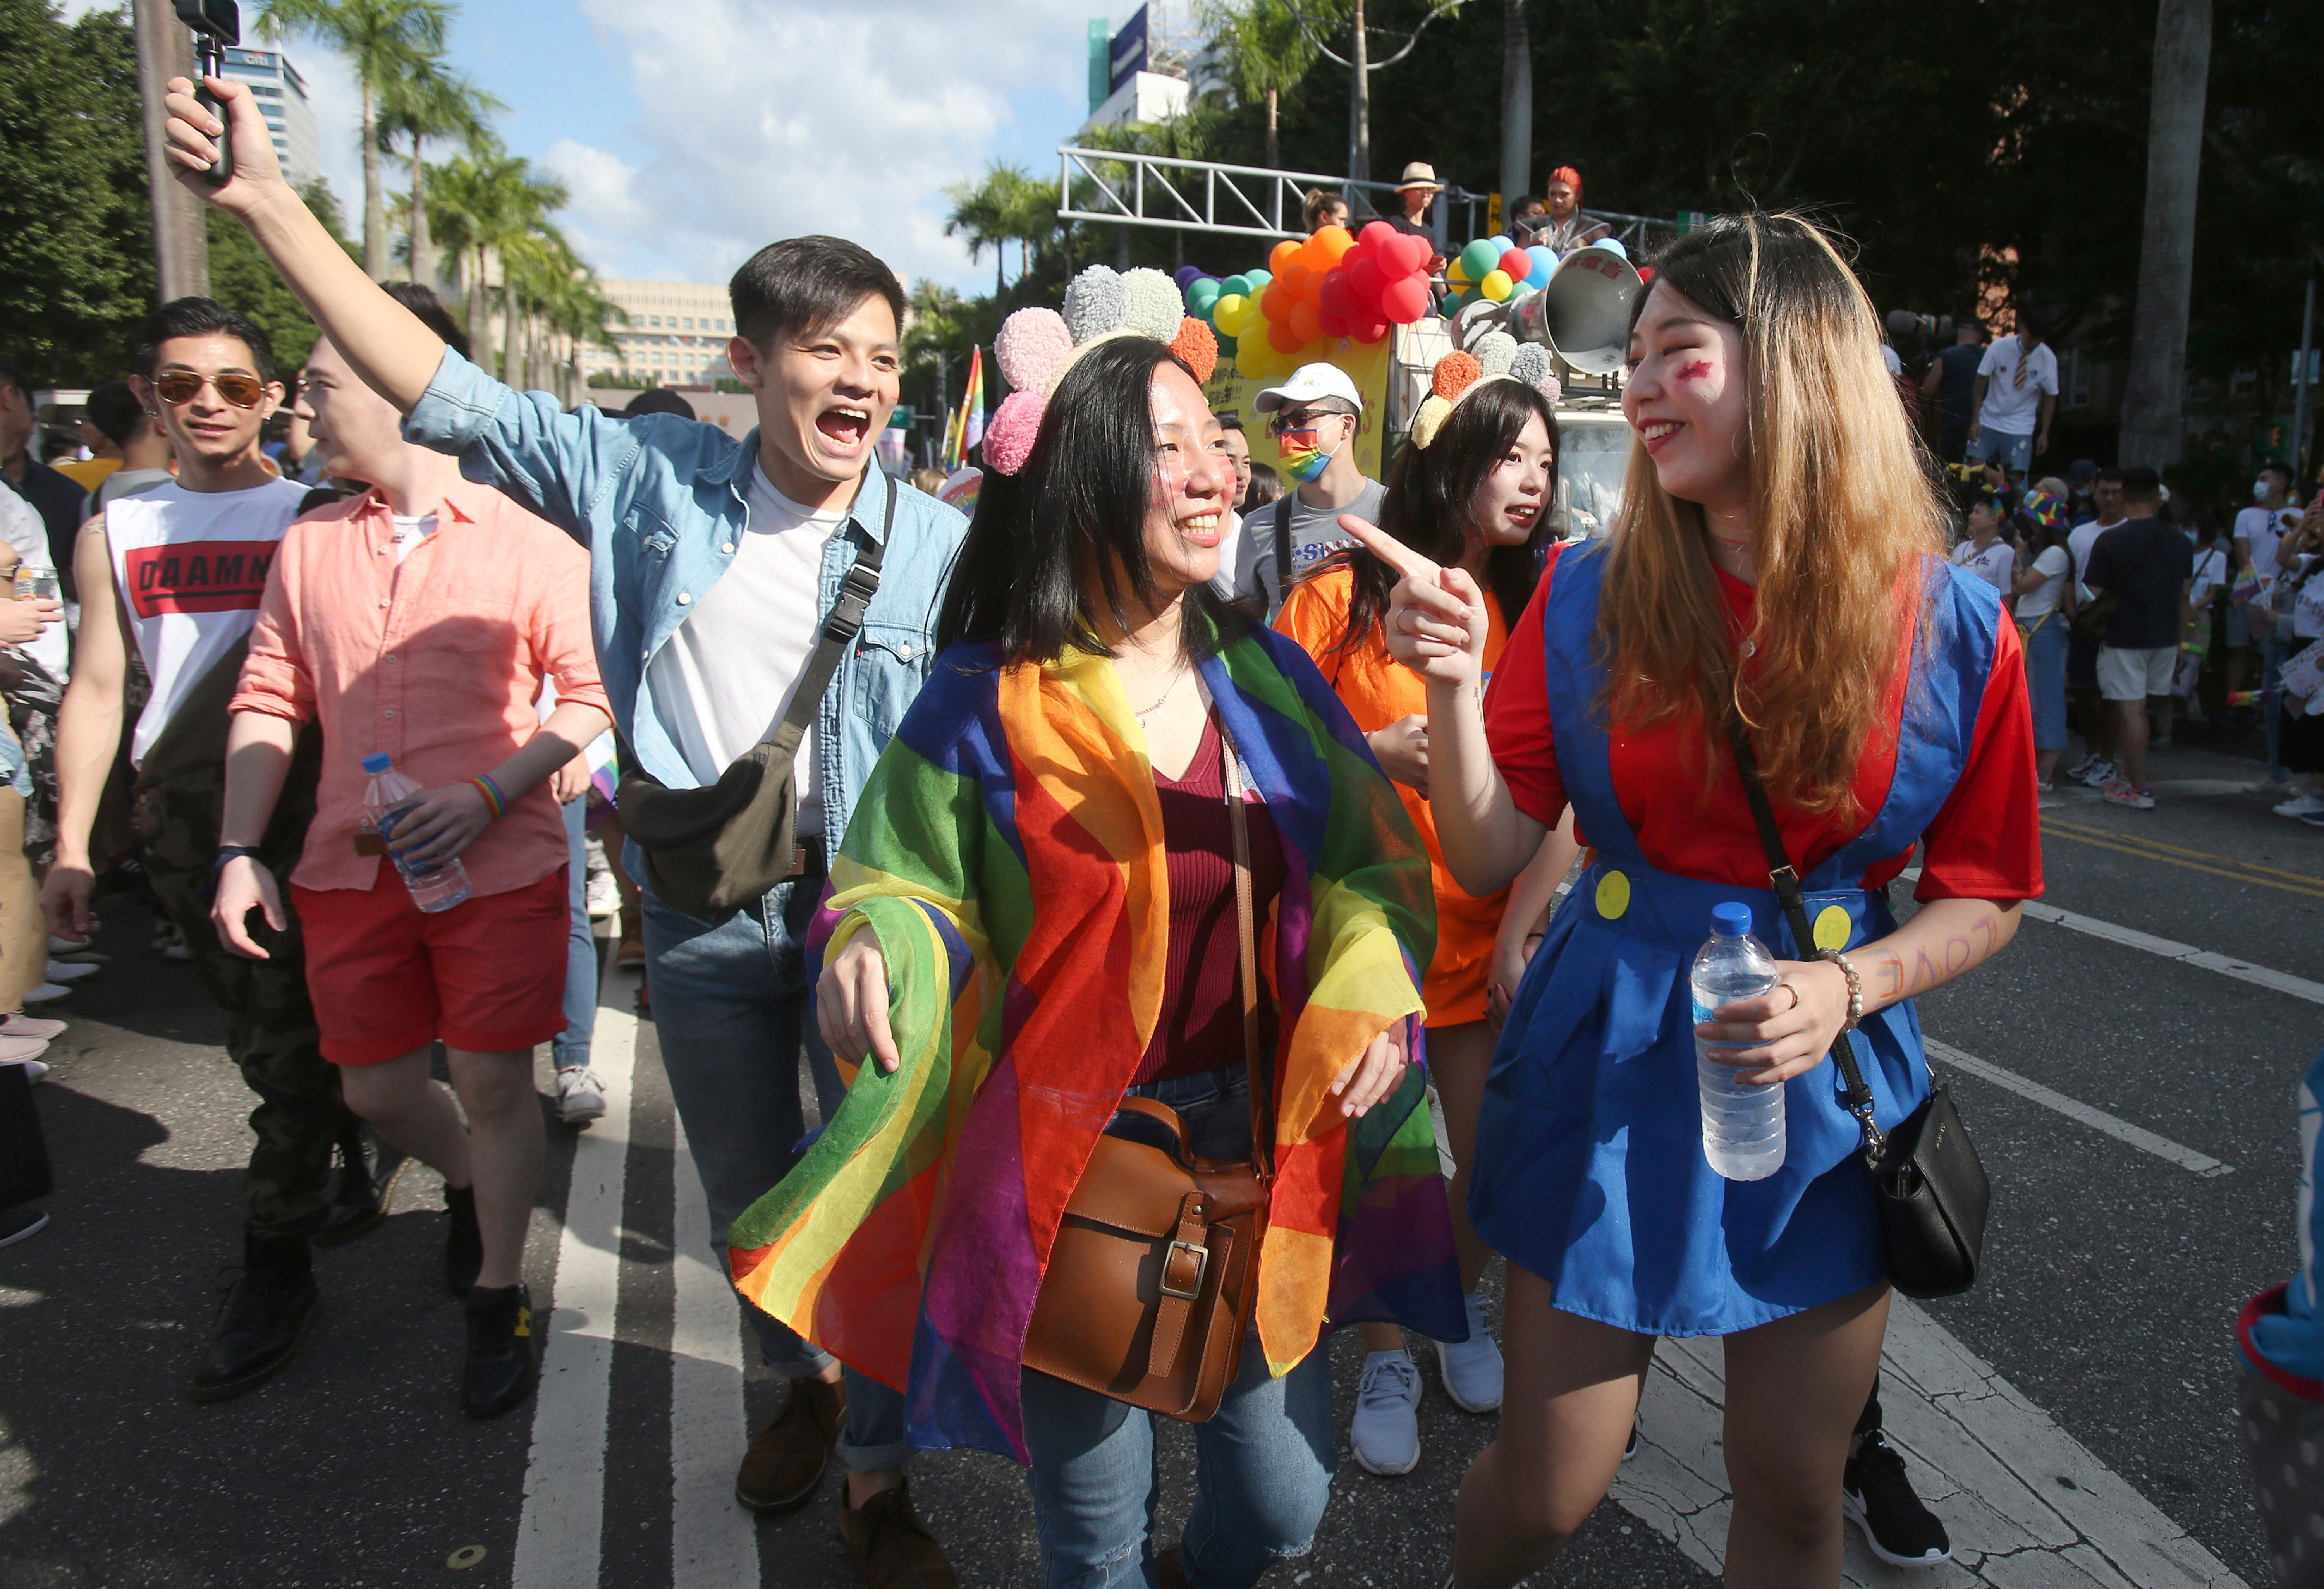 No lockdowns, no downturn: Taiwan attracts skilled expats with (mostly) COVID-free life